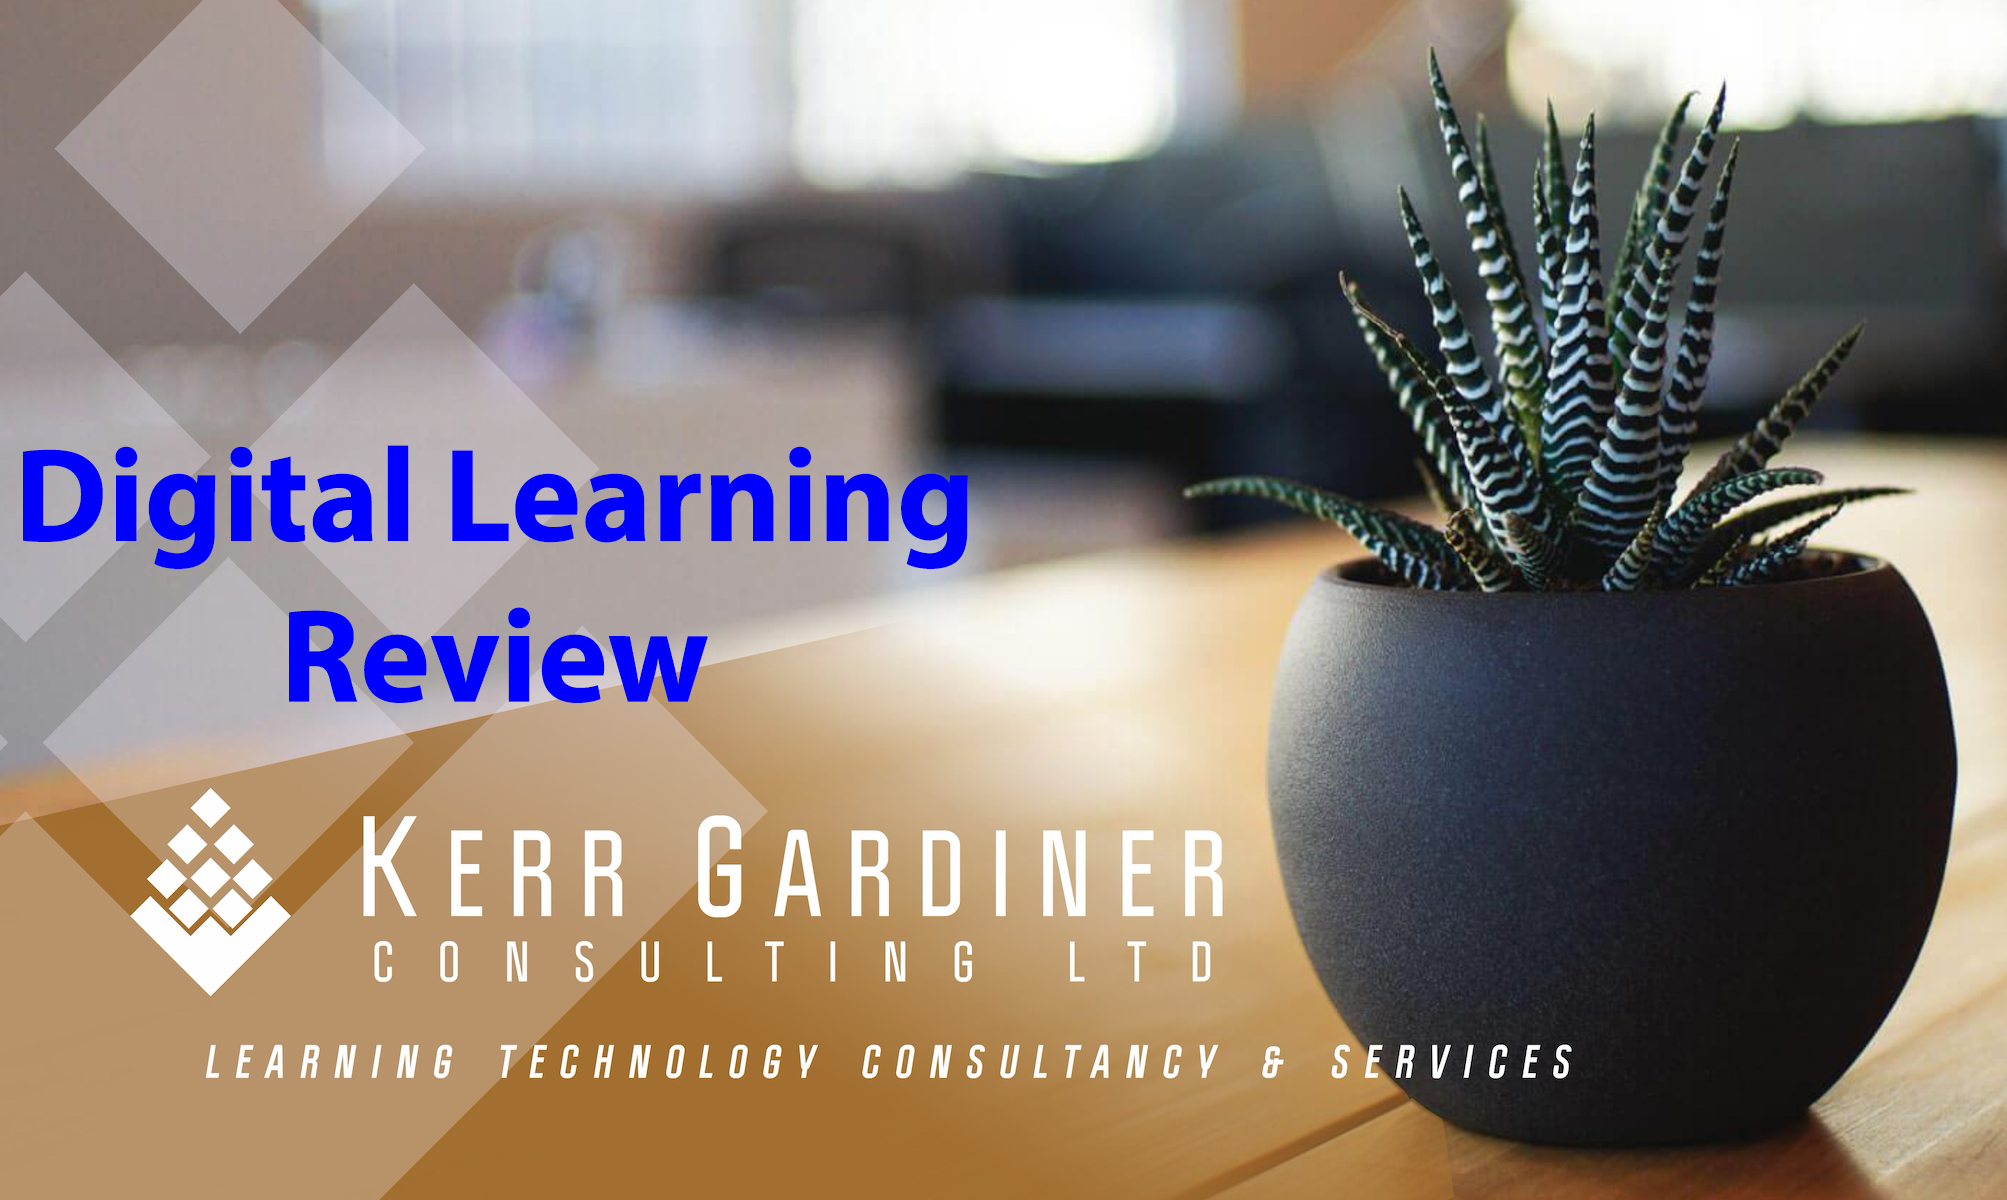 Digital Learning Review